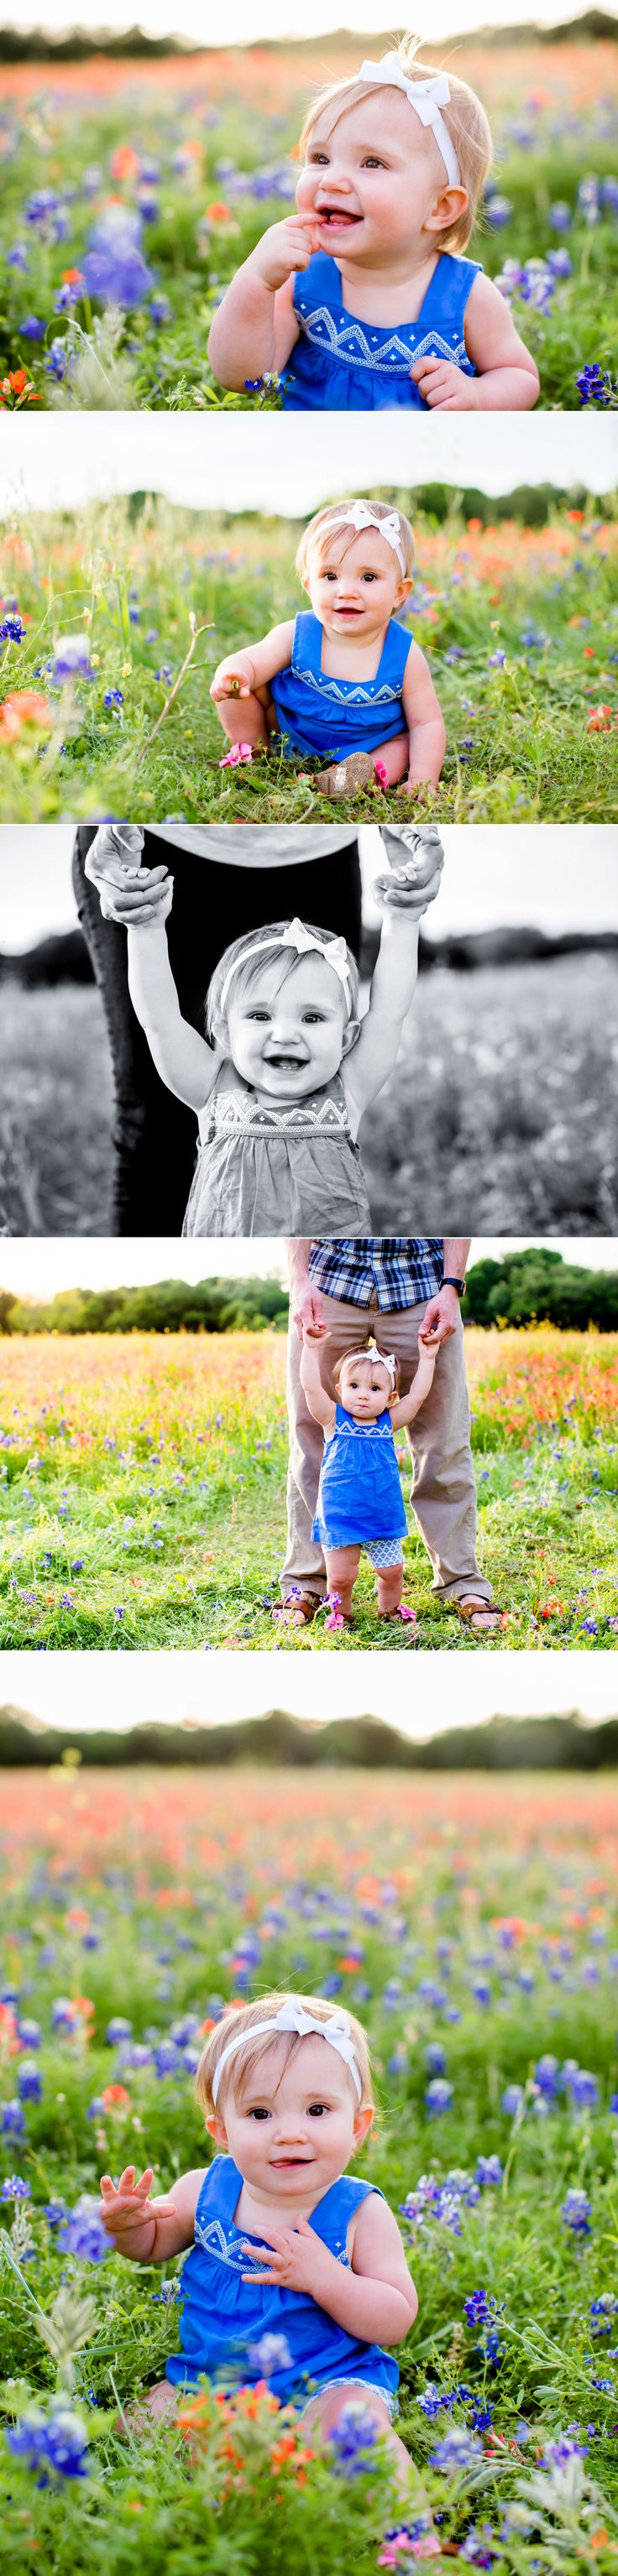 A baby girl in a field of bluebonnets in Waco, Texas. The setting sun and her big smile make for a beautiful milestone portrait.